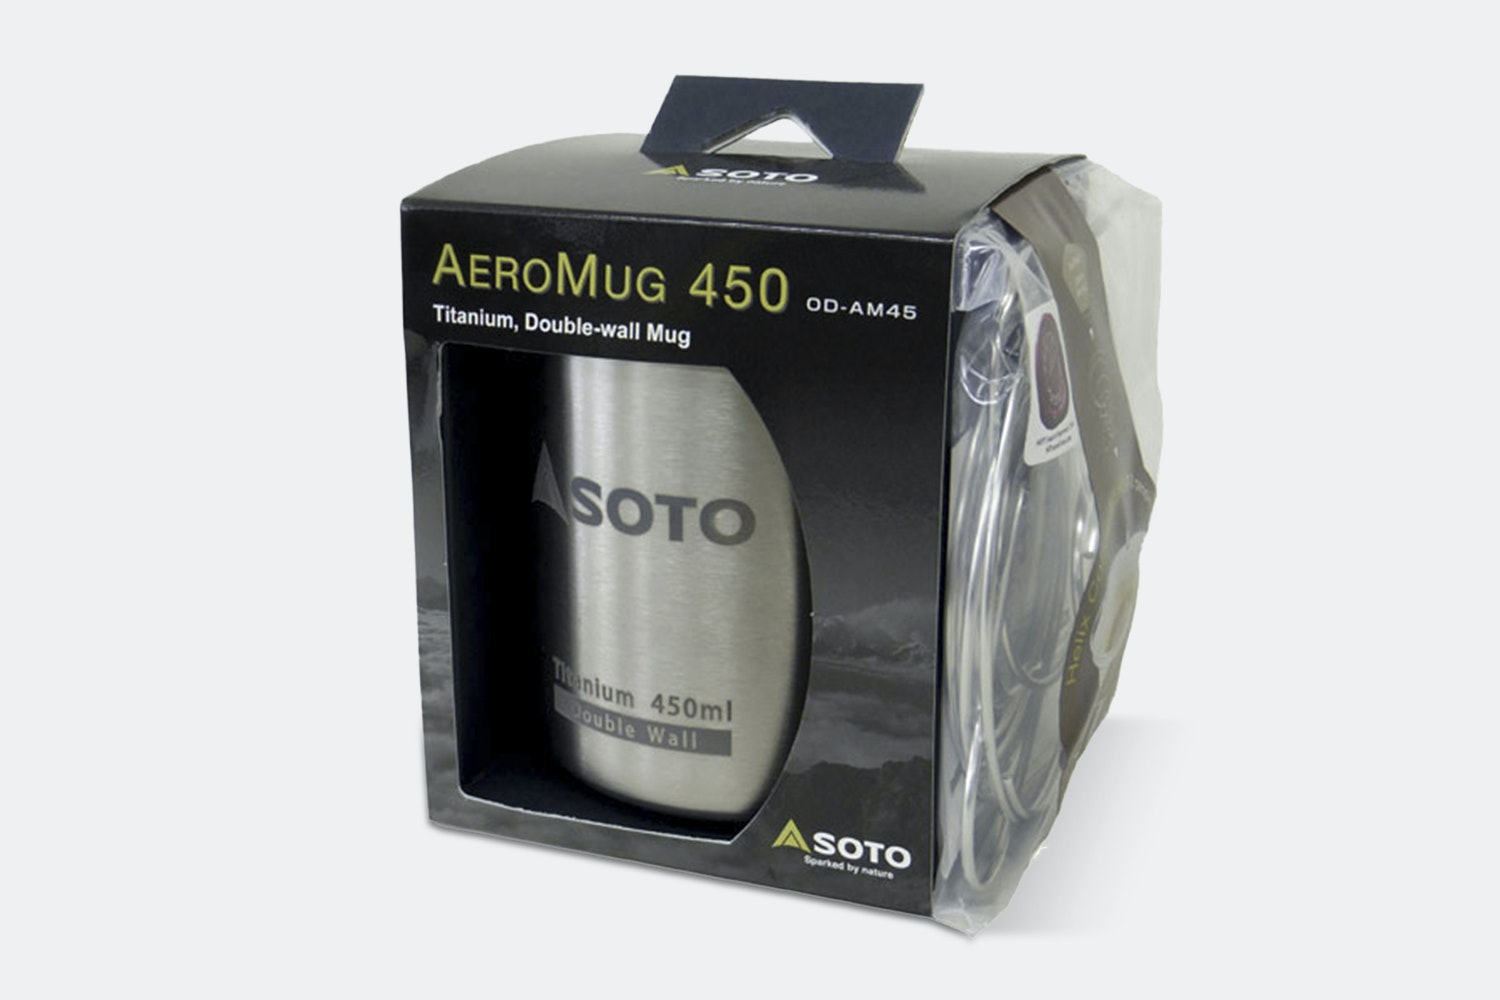 SOTO AeroMug 450ml Titanium Double-Wall Mug